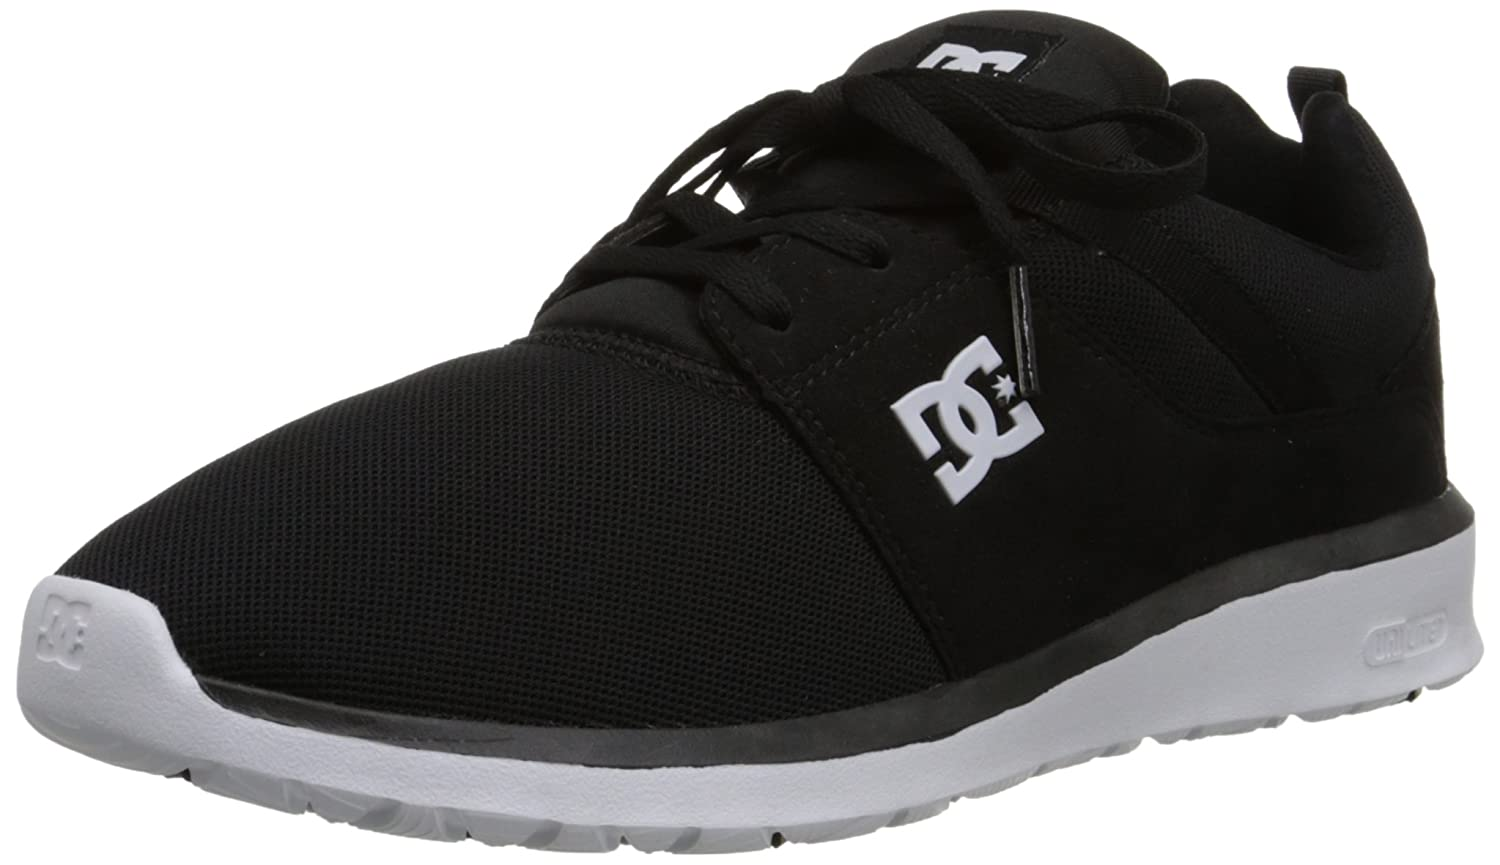 DC Men's Heathrow Casual Skate Shoe 14 D(M) US|Black/White